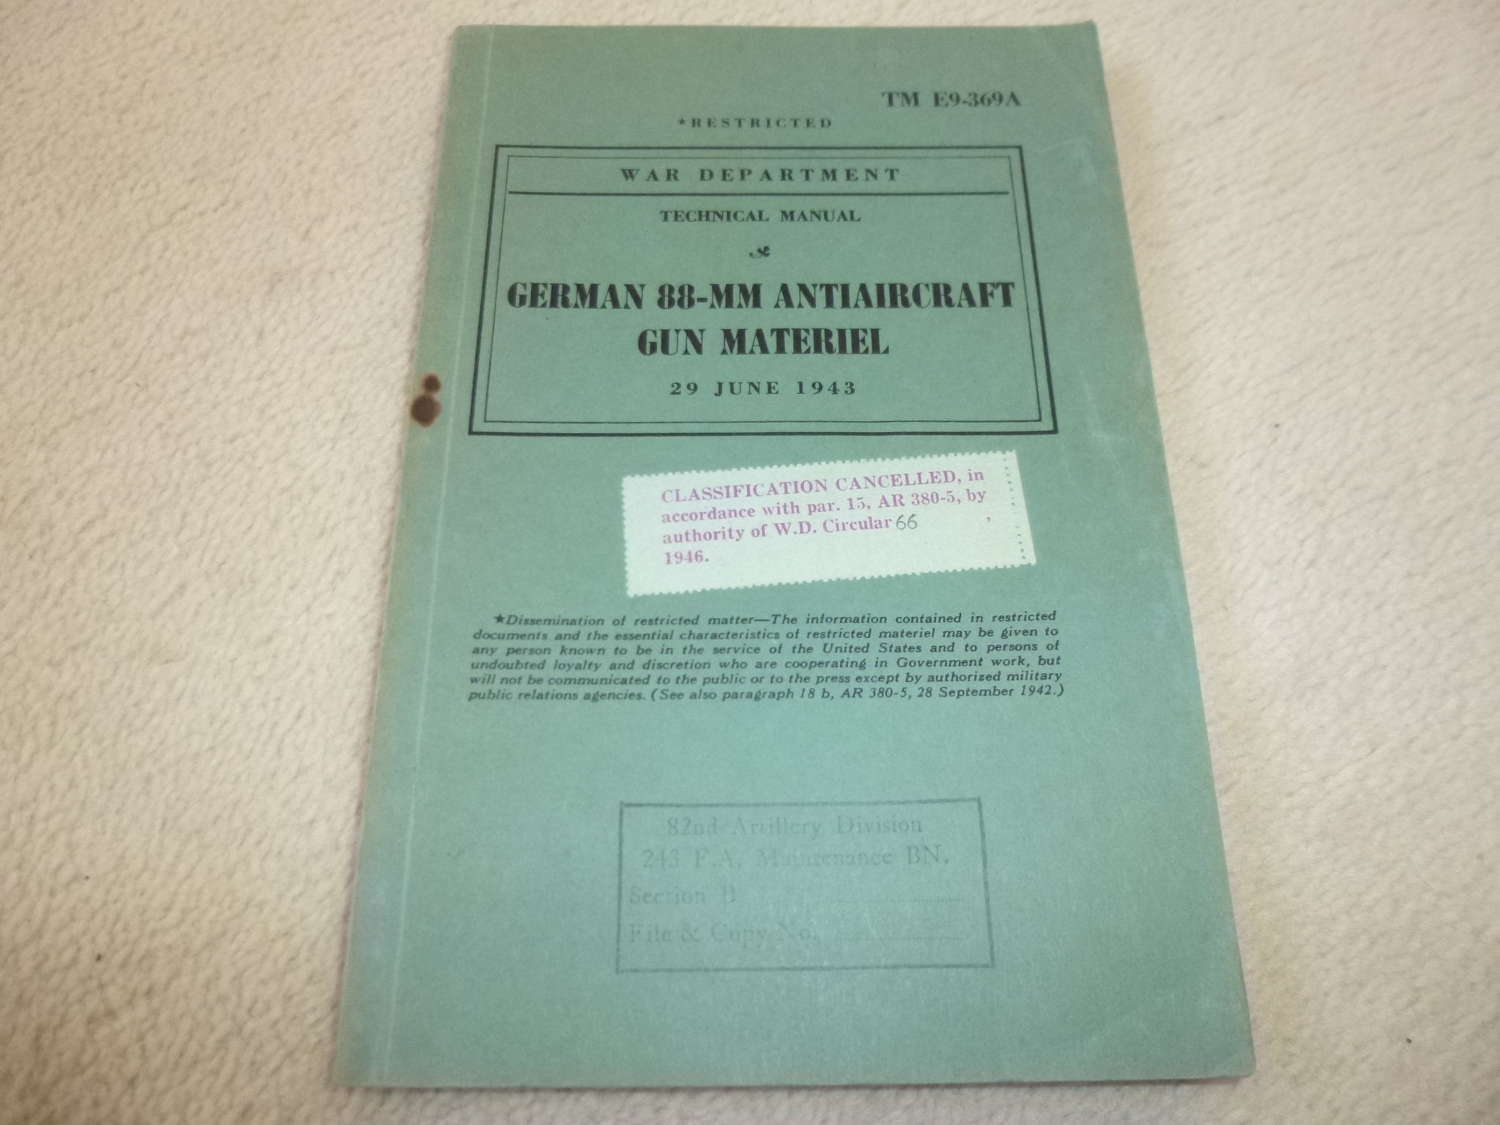 US Army TM E9-369 German 88mm Antiaircraft Gun Manual